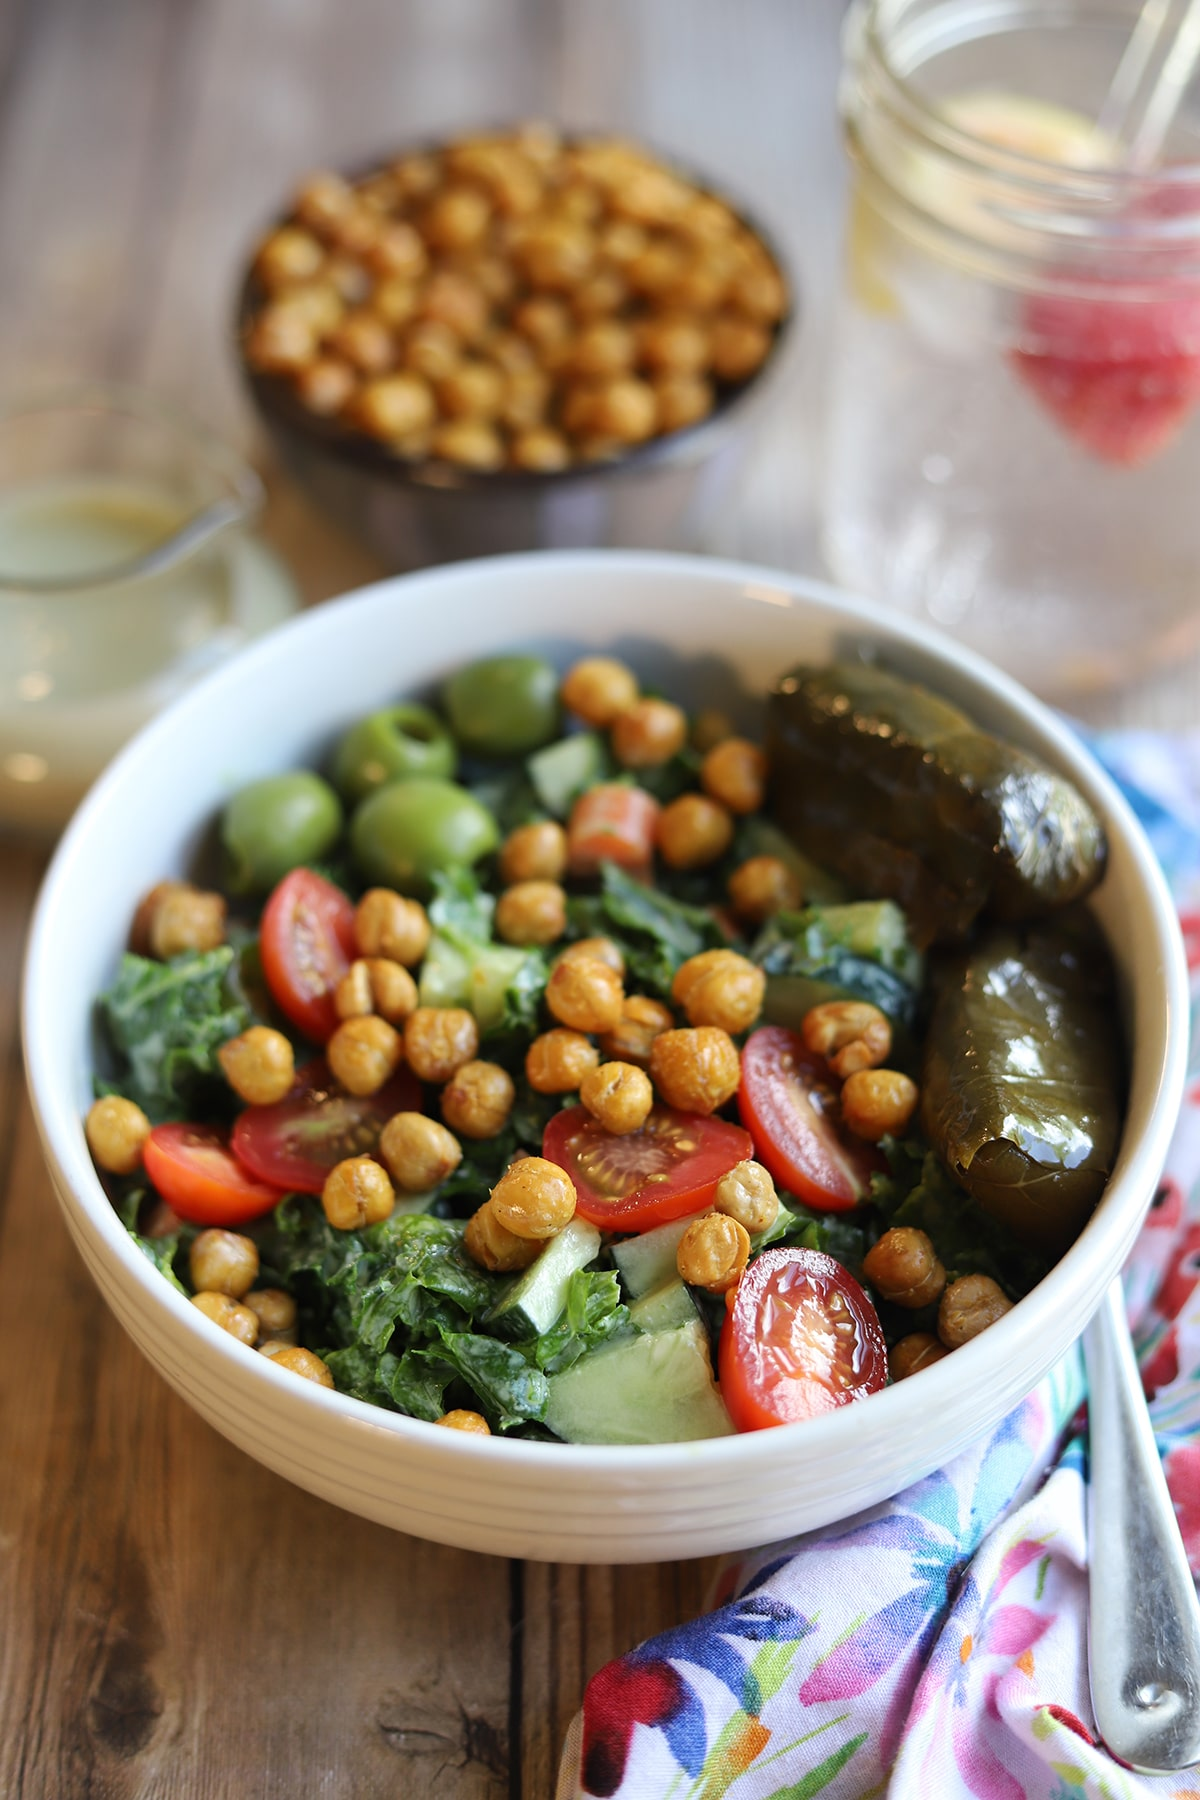 Massaged kale salad in bowl with dolmas and olives.